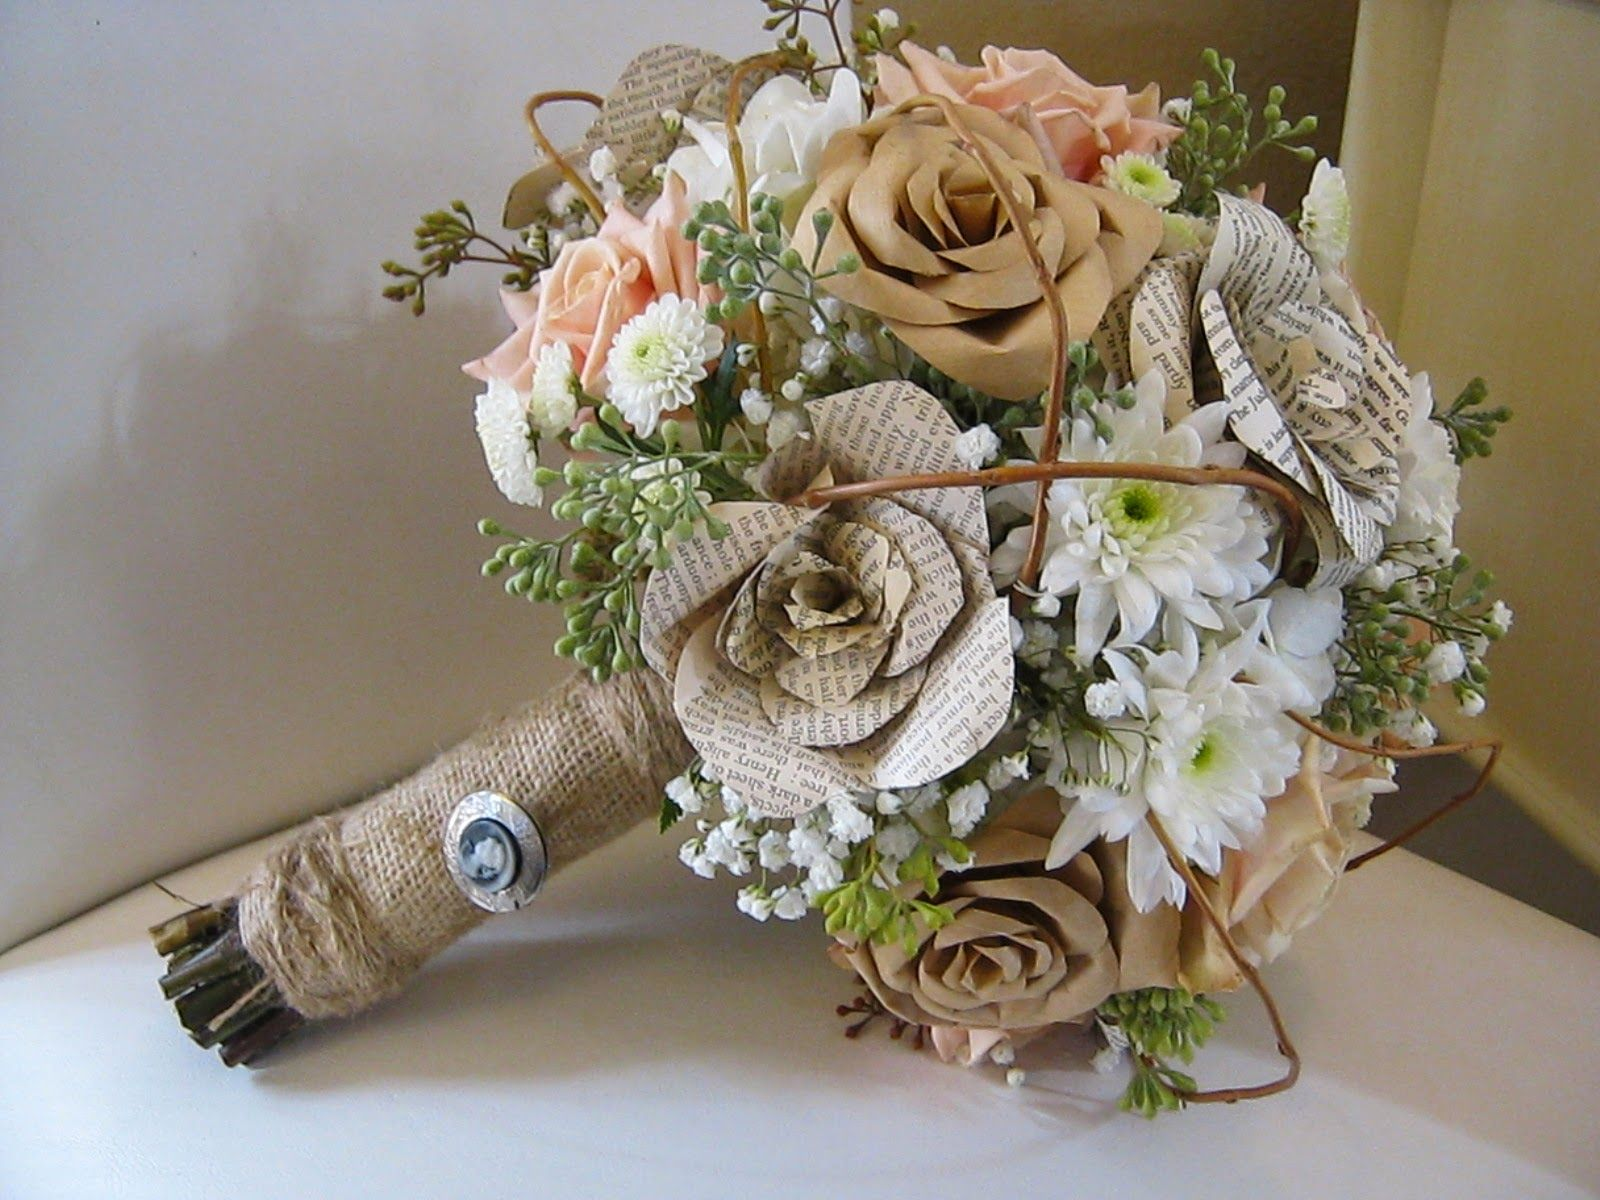 Bouquet Mix Of Paper And Real Flowers Wrapped In Burlap The